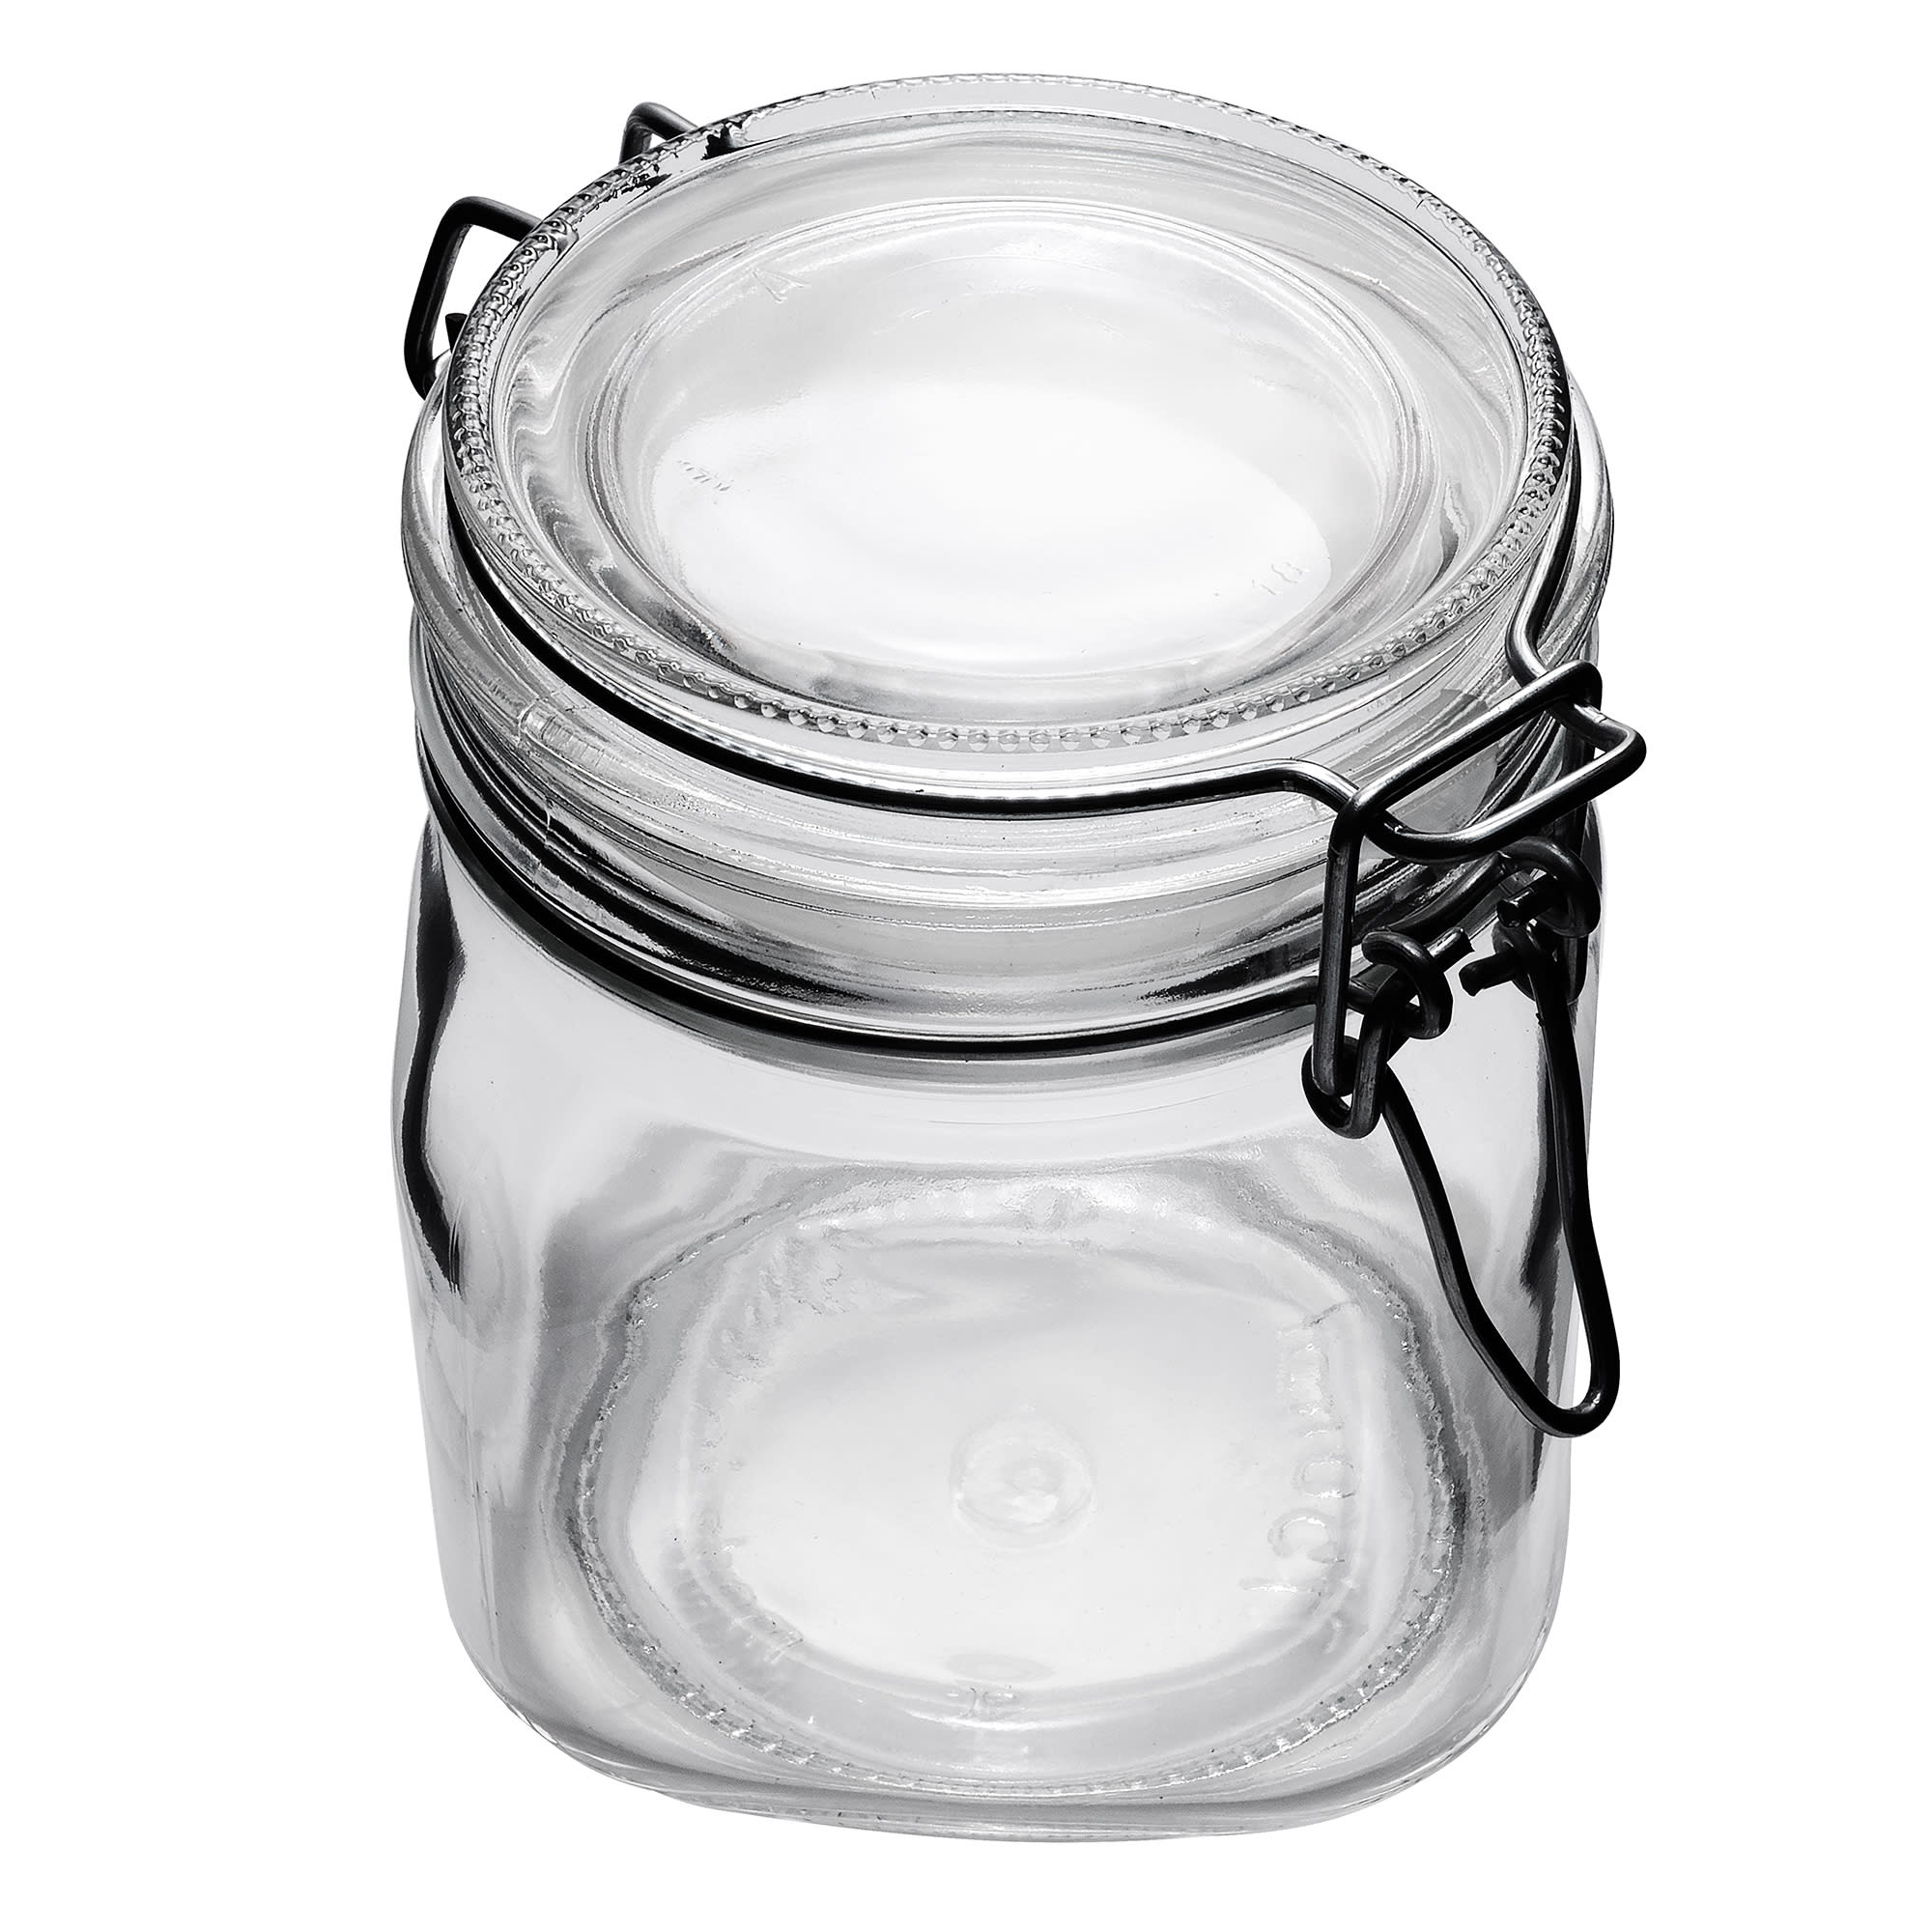 Libbey 17209925 25.25 oz Glass Jar - Clamp Lid, Large Ope...